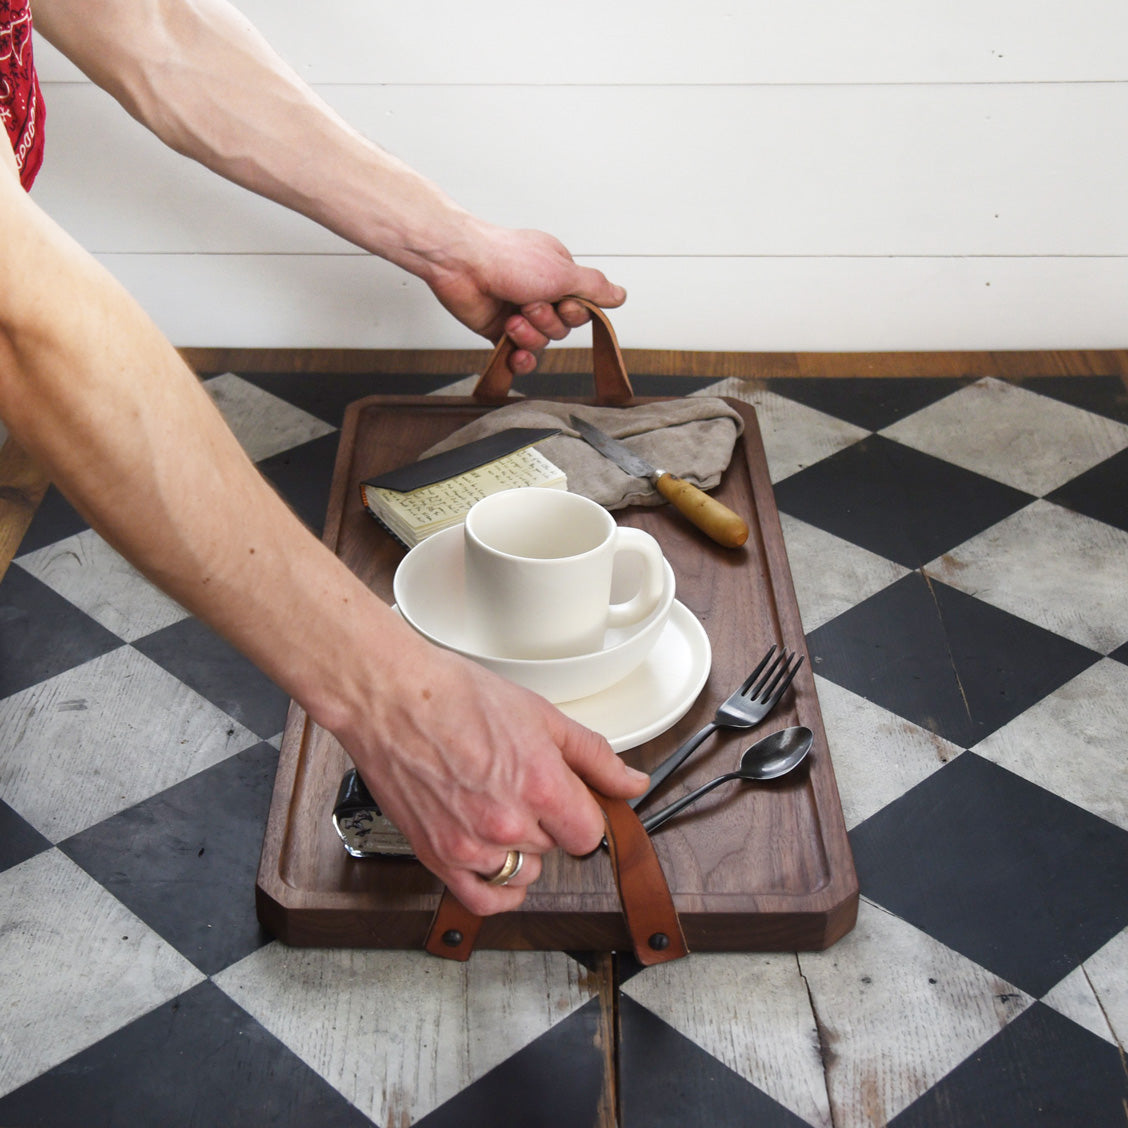 The Watson Serving Tray by Peg and Awl